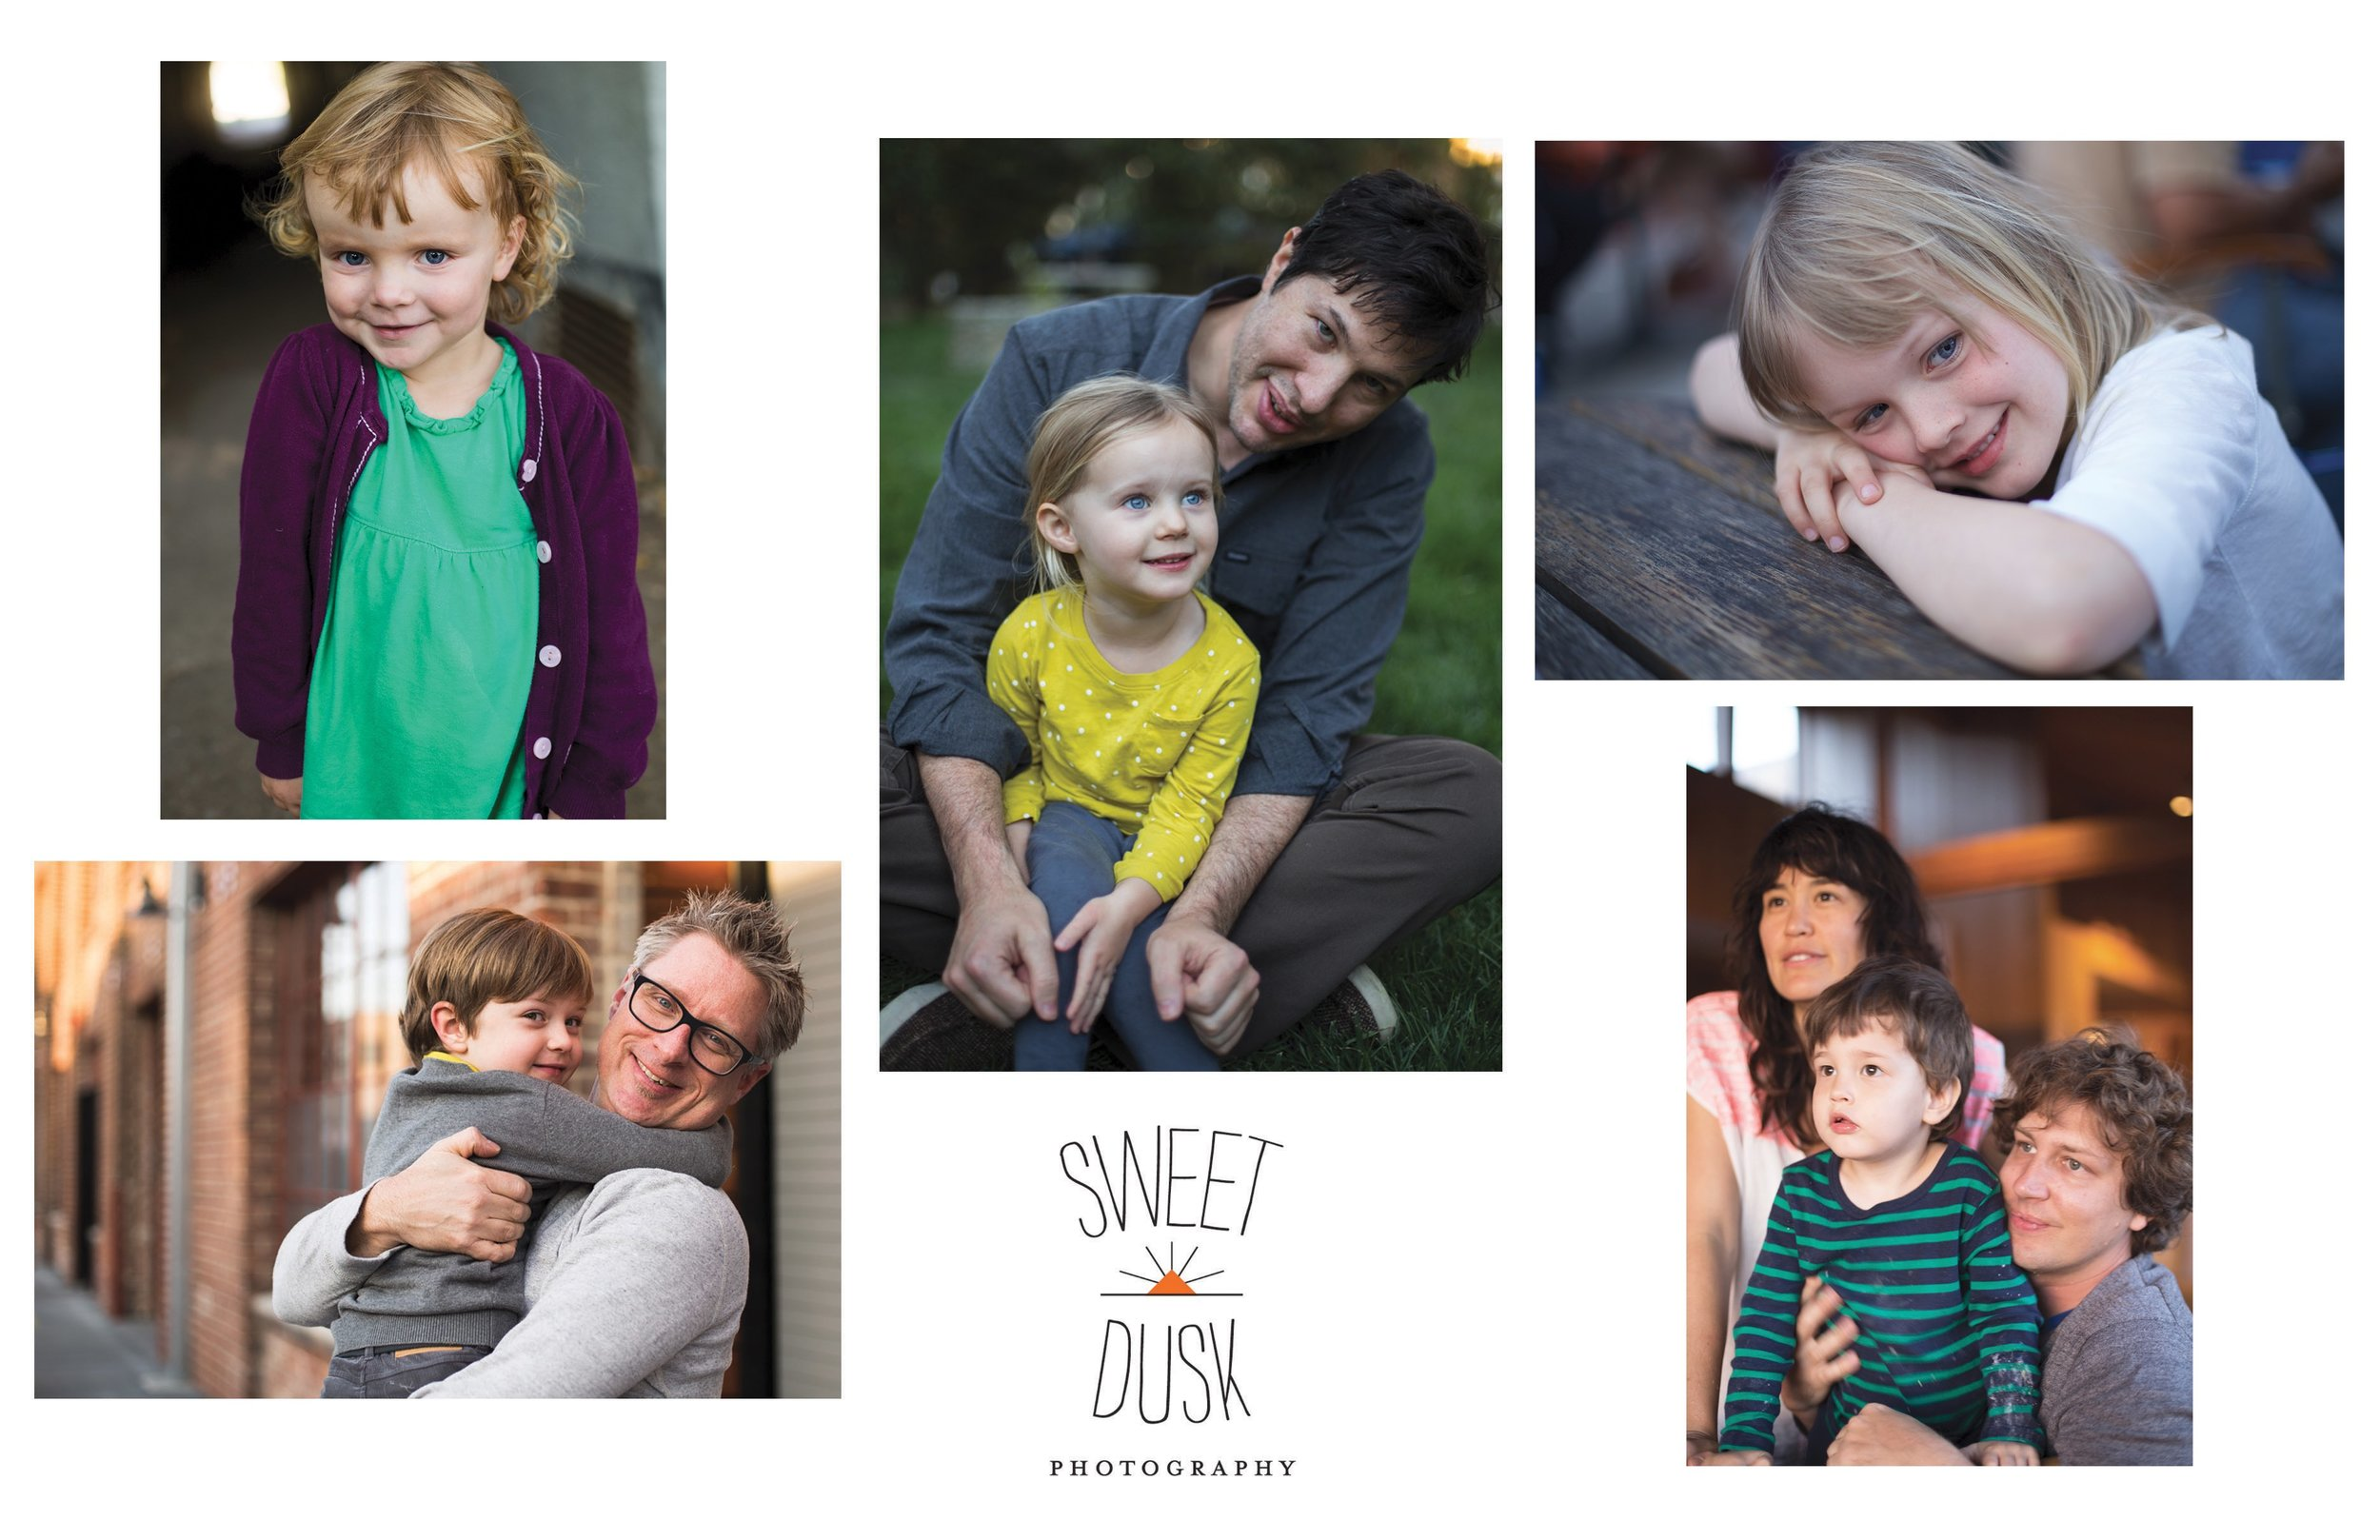 10a-NOON    Come have a portrait made of you, your kids, your sweetheart, the whole family!     https://www.reso.io/activities/family-portraits-by-sweet-dusk-photography